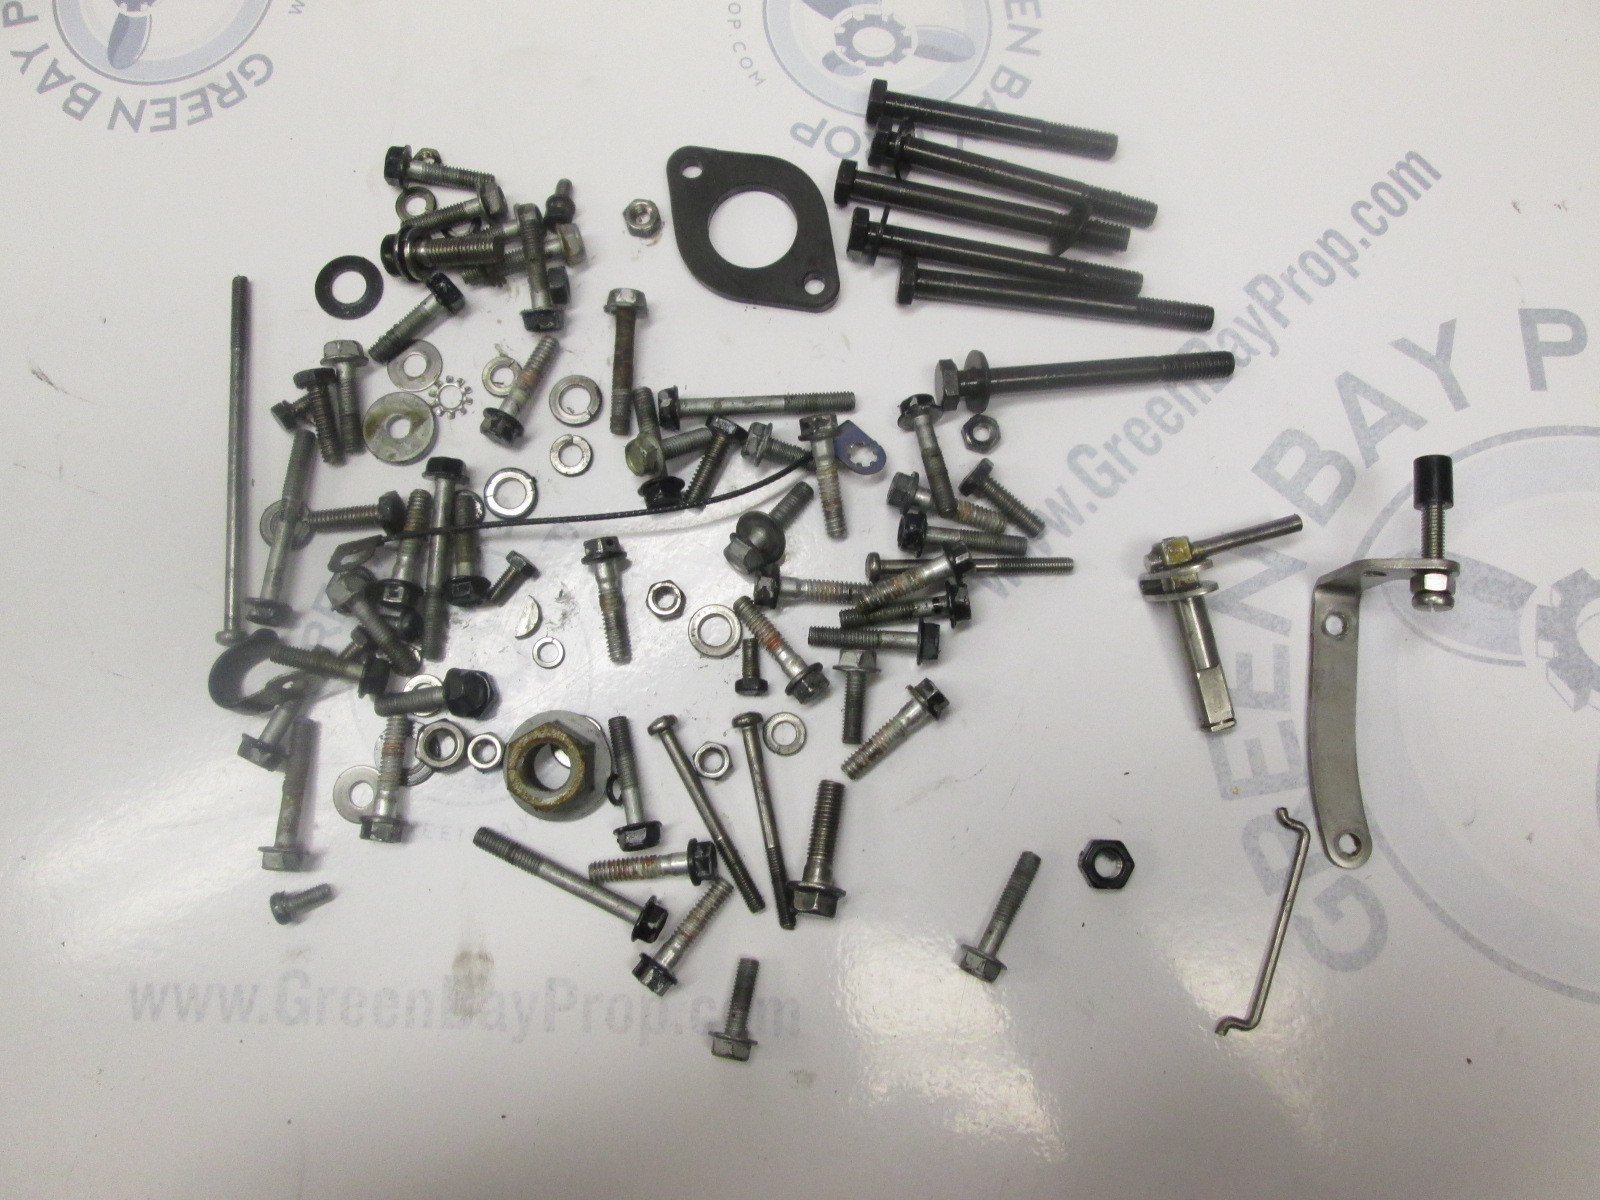 2000 Evinrude 8hp 4 Stroke Outboard Misc. Nuts Bolts Screws Washers Hardware